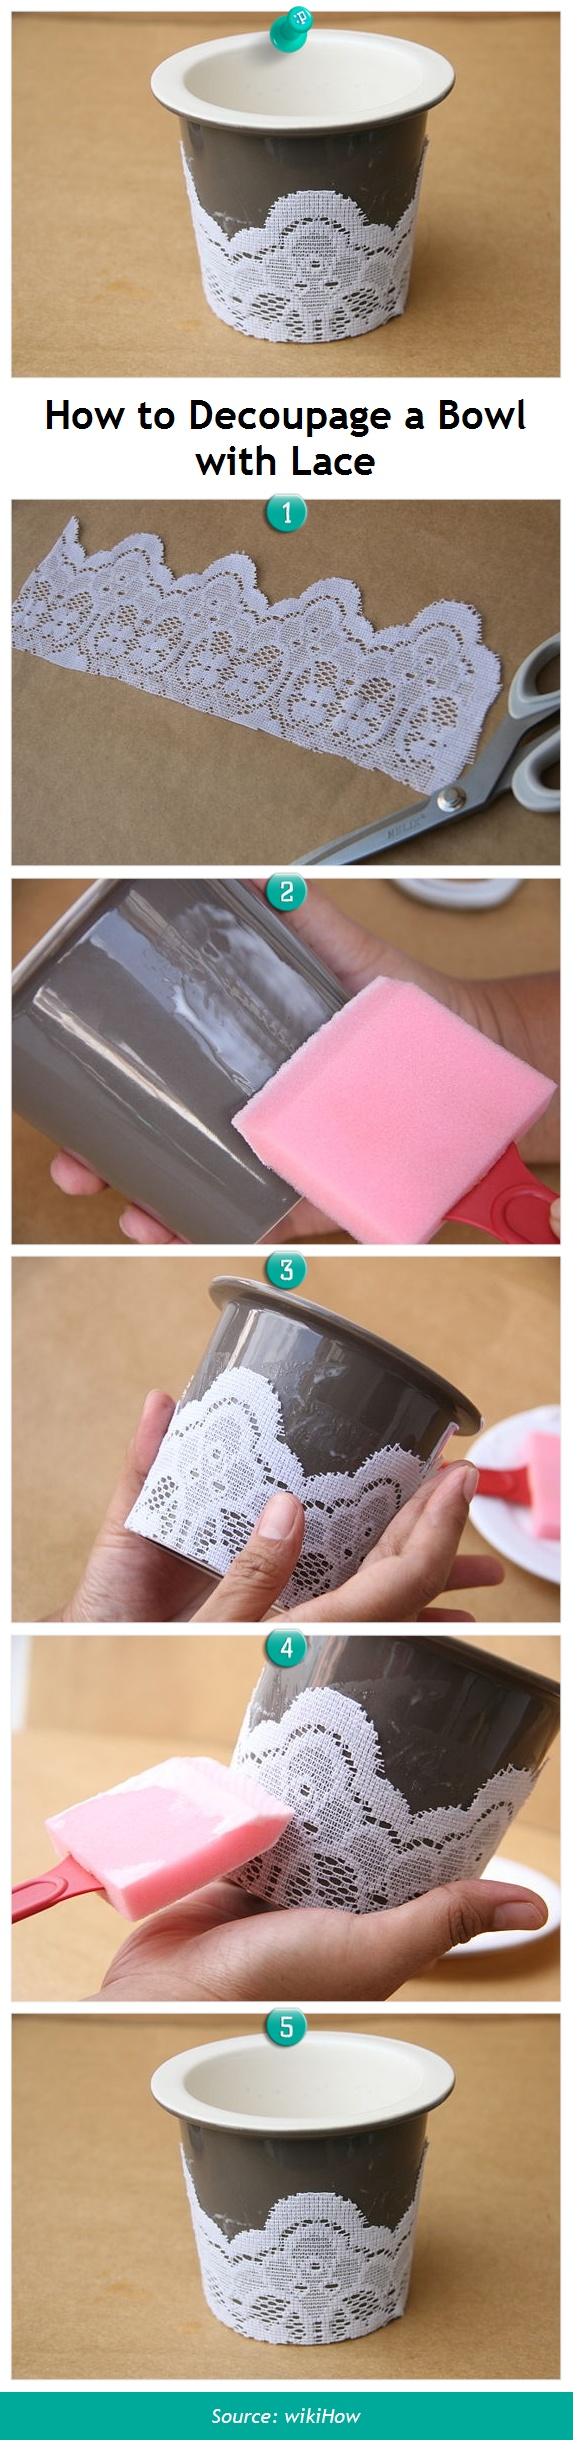 wikiHow to Decoupage a Bowl with Lace -- via wikiHow.com